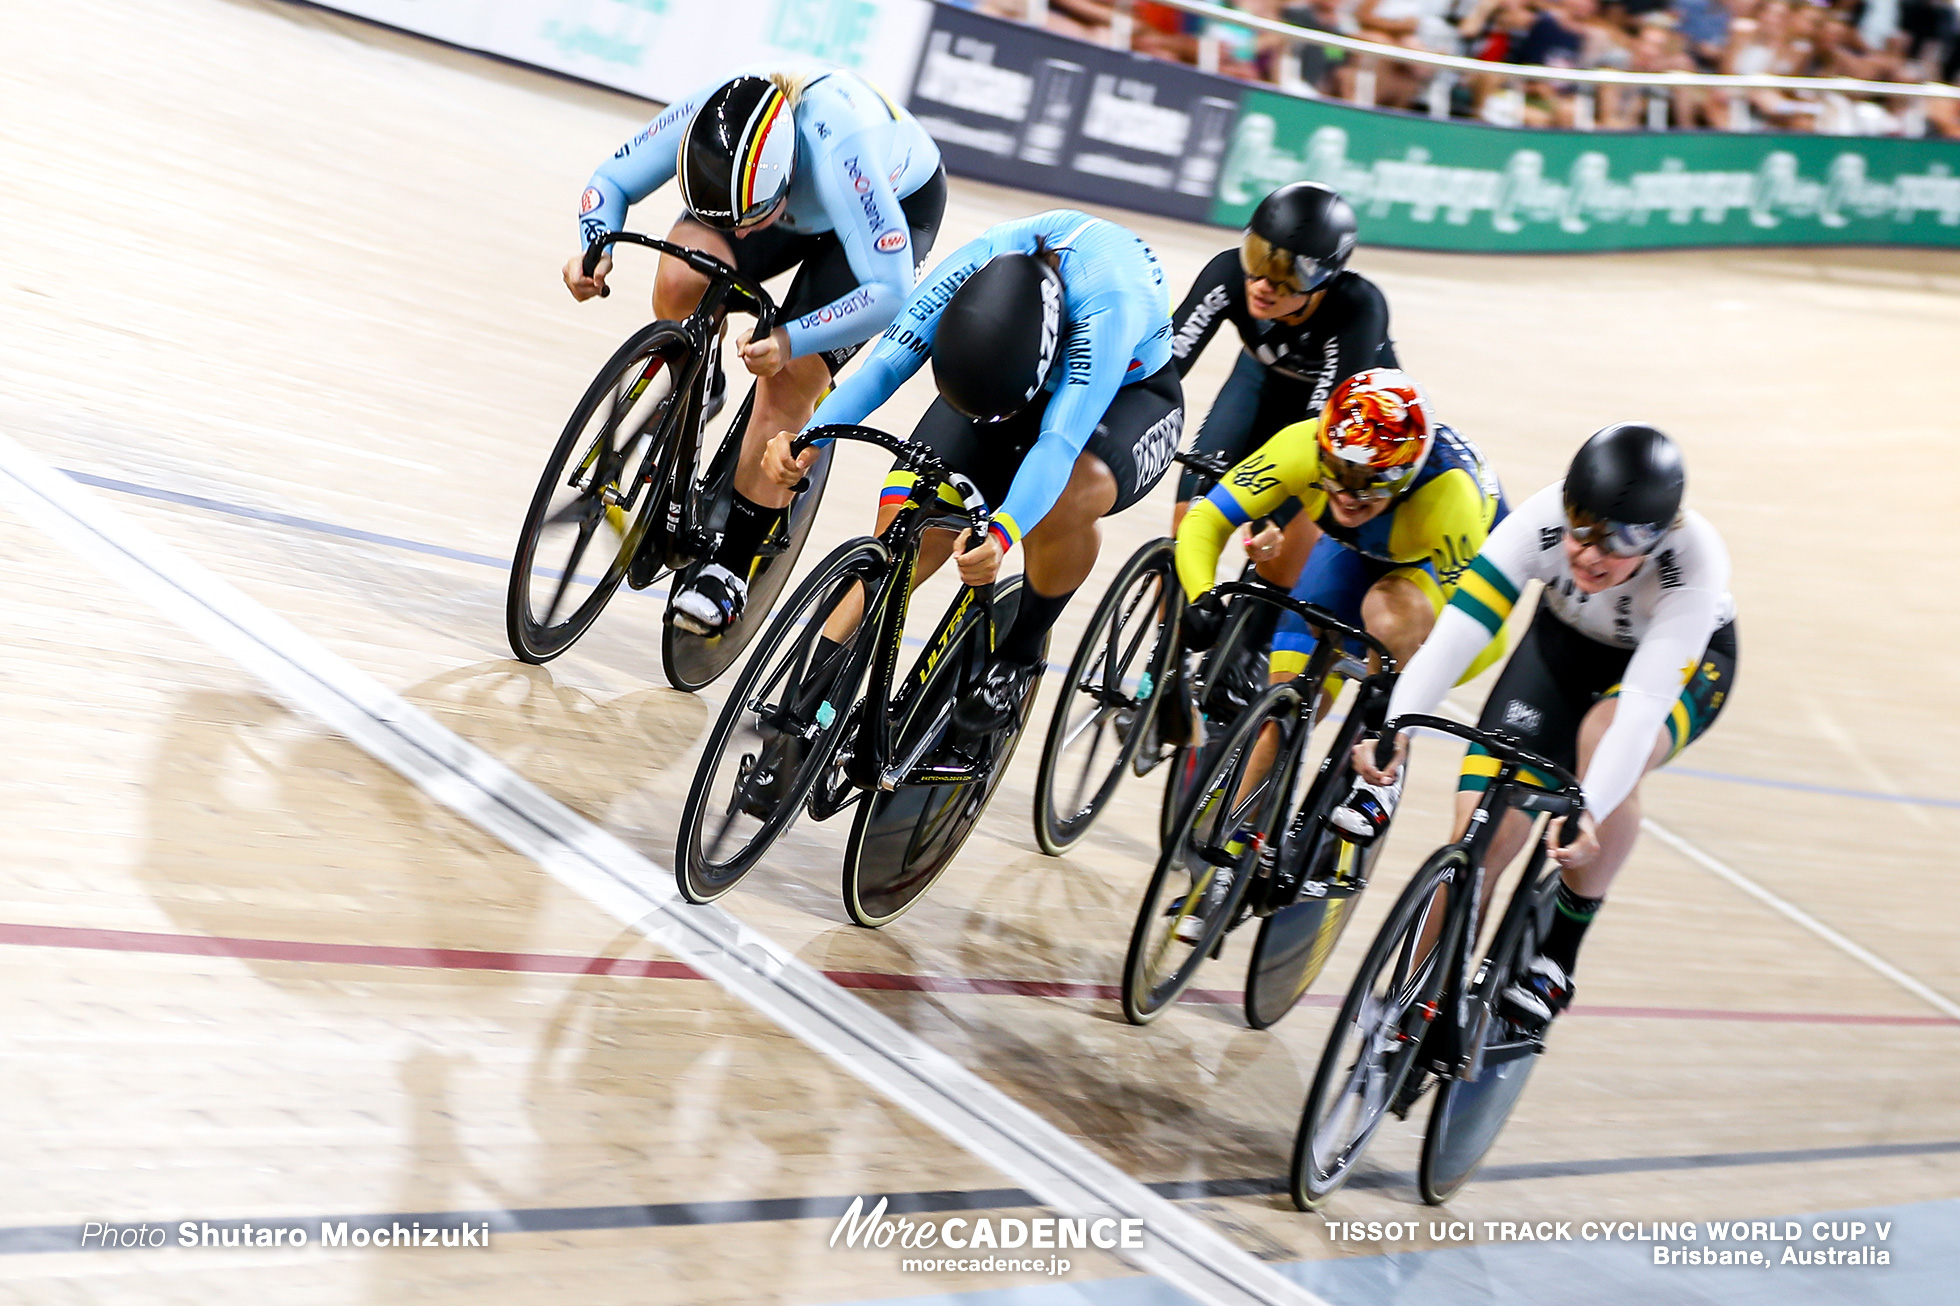 Final / Women's Keirin / TISSOT UCI TRACK CYCLING WORLD CUP V, Brisbane, Australia, Stephanie MORTON ステファニー・モートン Martha BAYONA PINEDA マーサ・バヨナ Nicky DEGRENDELE ニッキー・デグレンデレ Natasha HANSEN ナターシャ・ハンセン Nikola SIBIAK ニコラ・シビアック